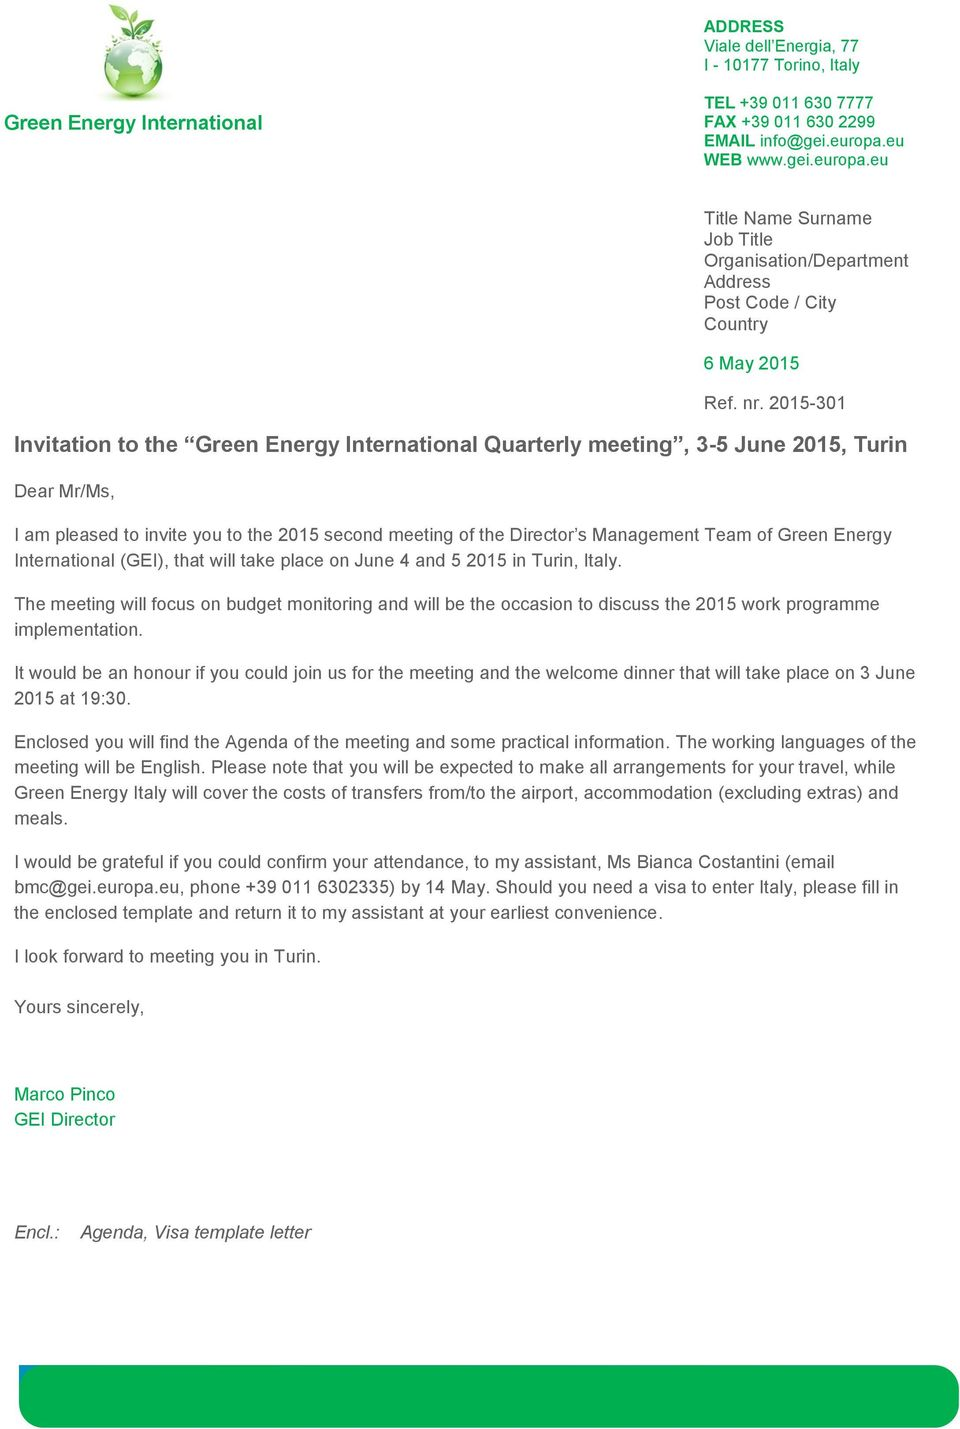 2015-301 Invitation to the Green Energy International Quarterly meeting, 3-5 June 2015, Turin Dear Mr/Ms, I am pleased to invite you to the 2015 second meeting of the Director s Management Team of